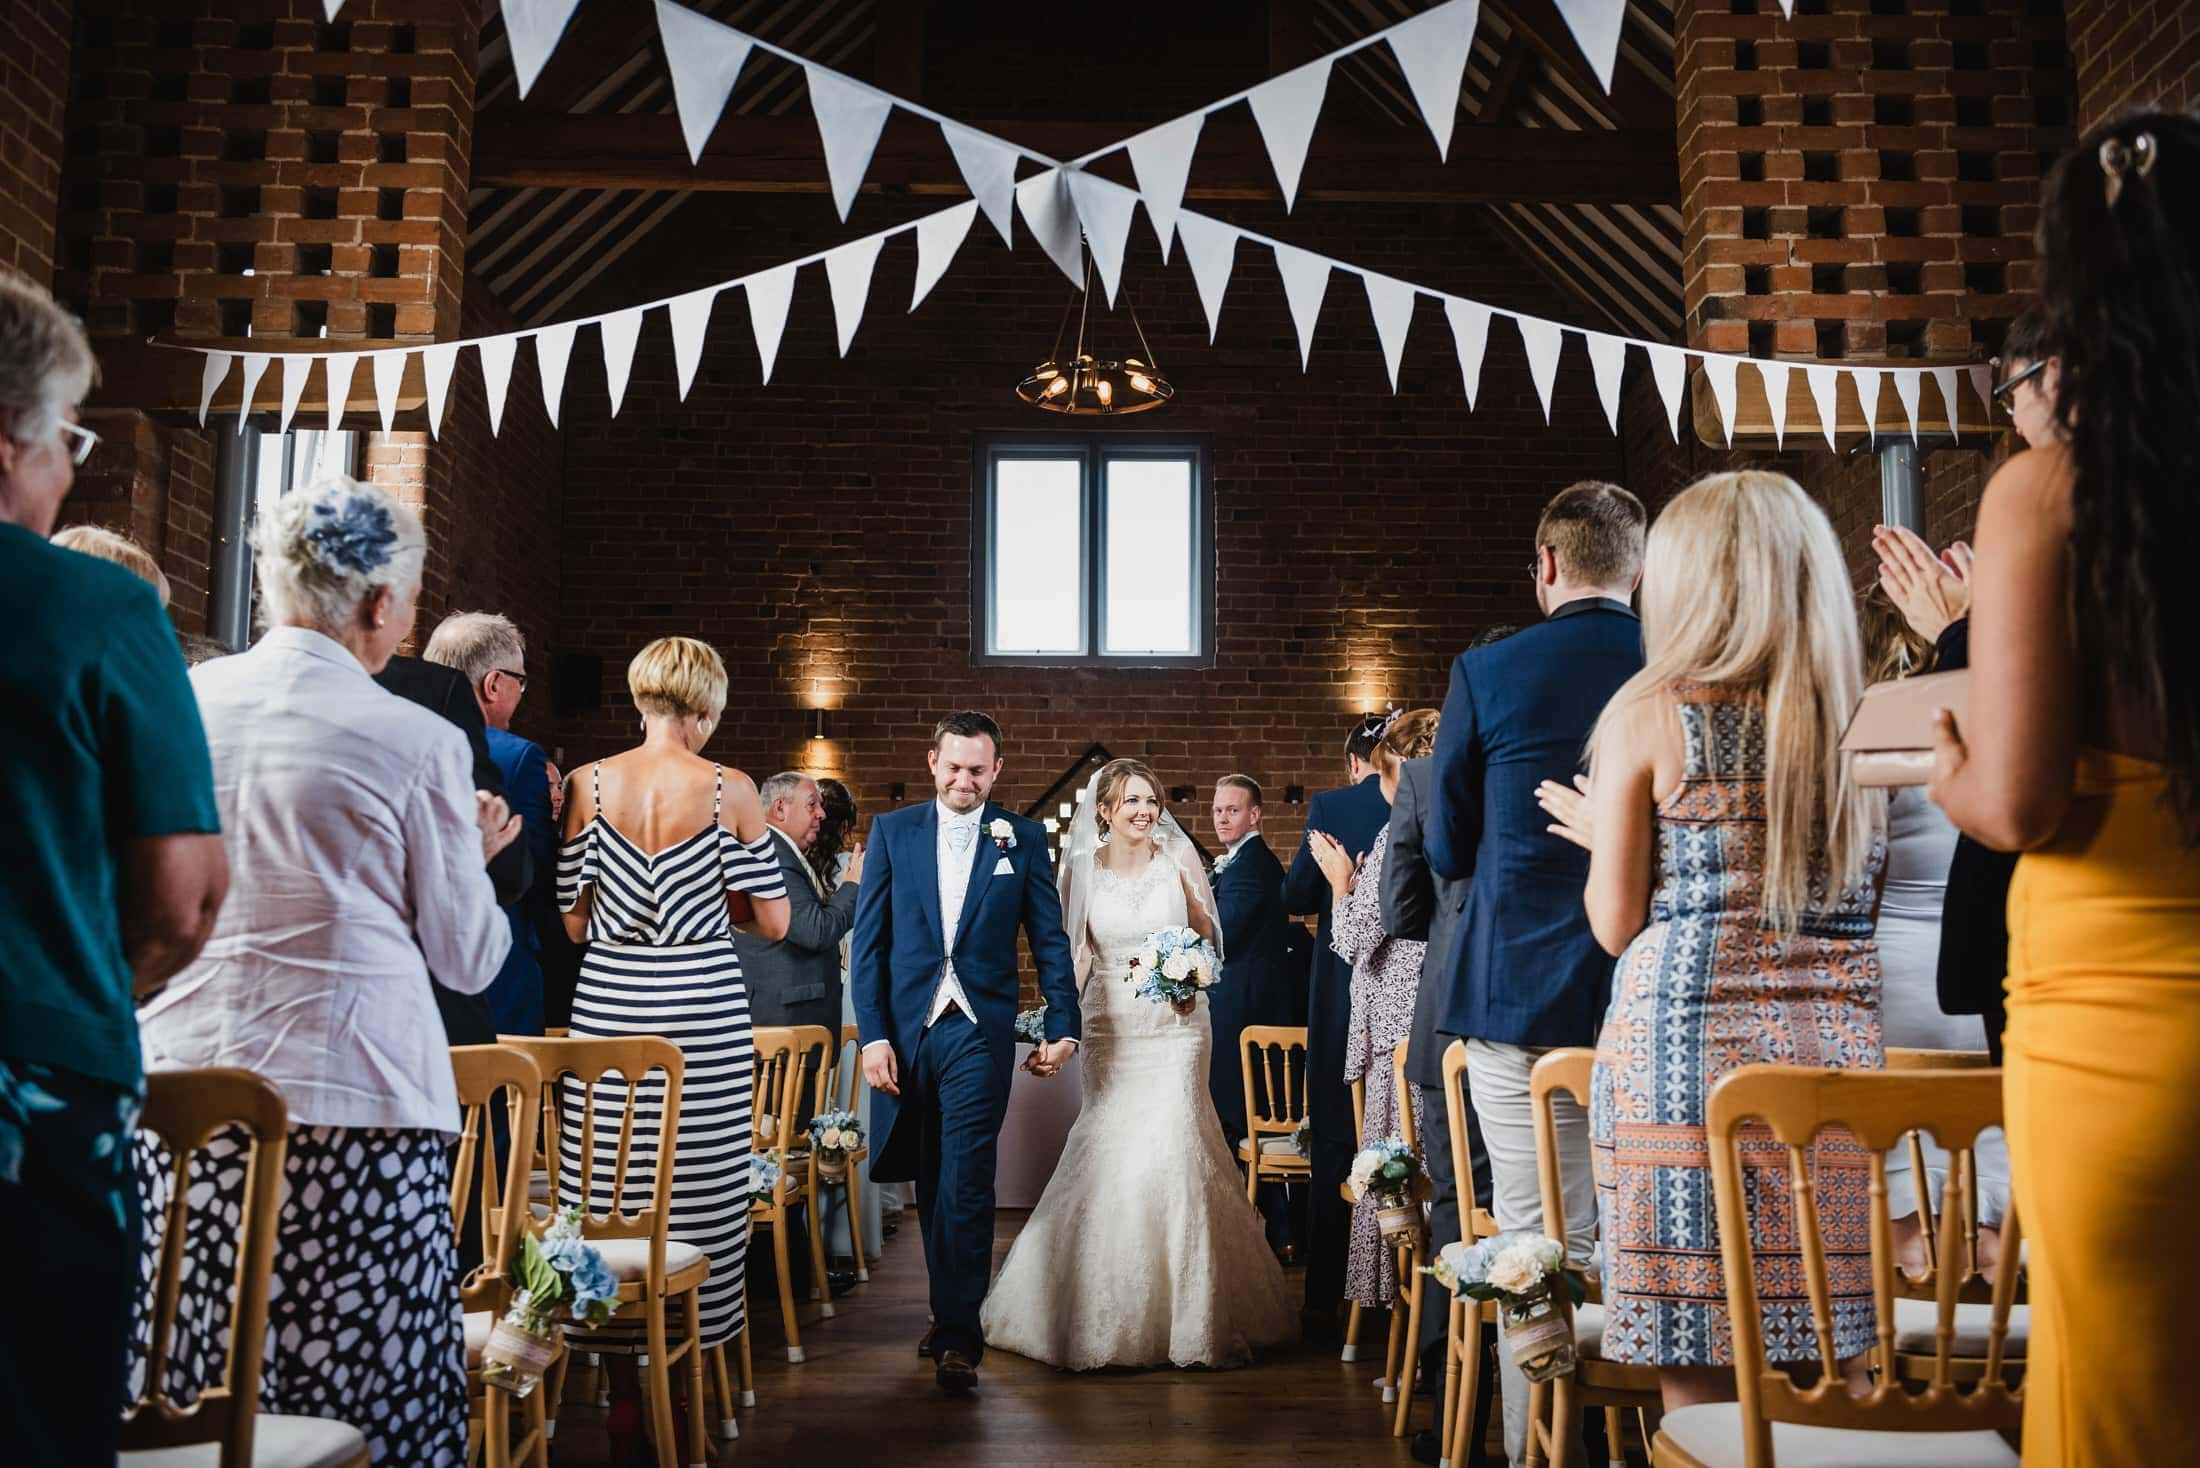 Newly married couple leave wedding ceremony inside old barn as guests clap